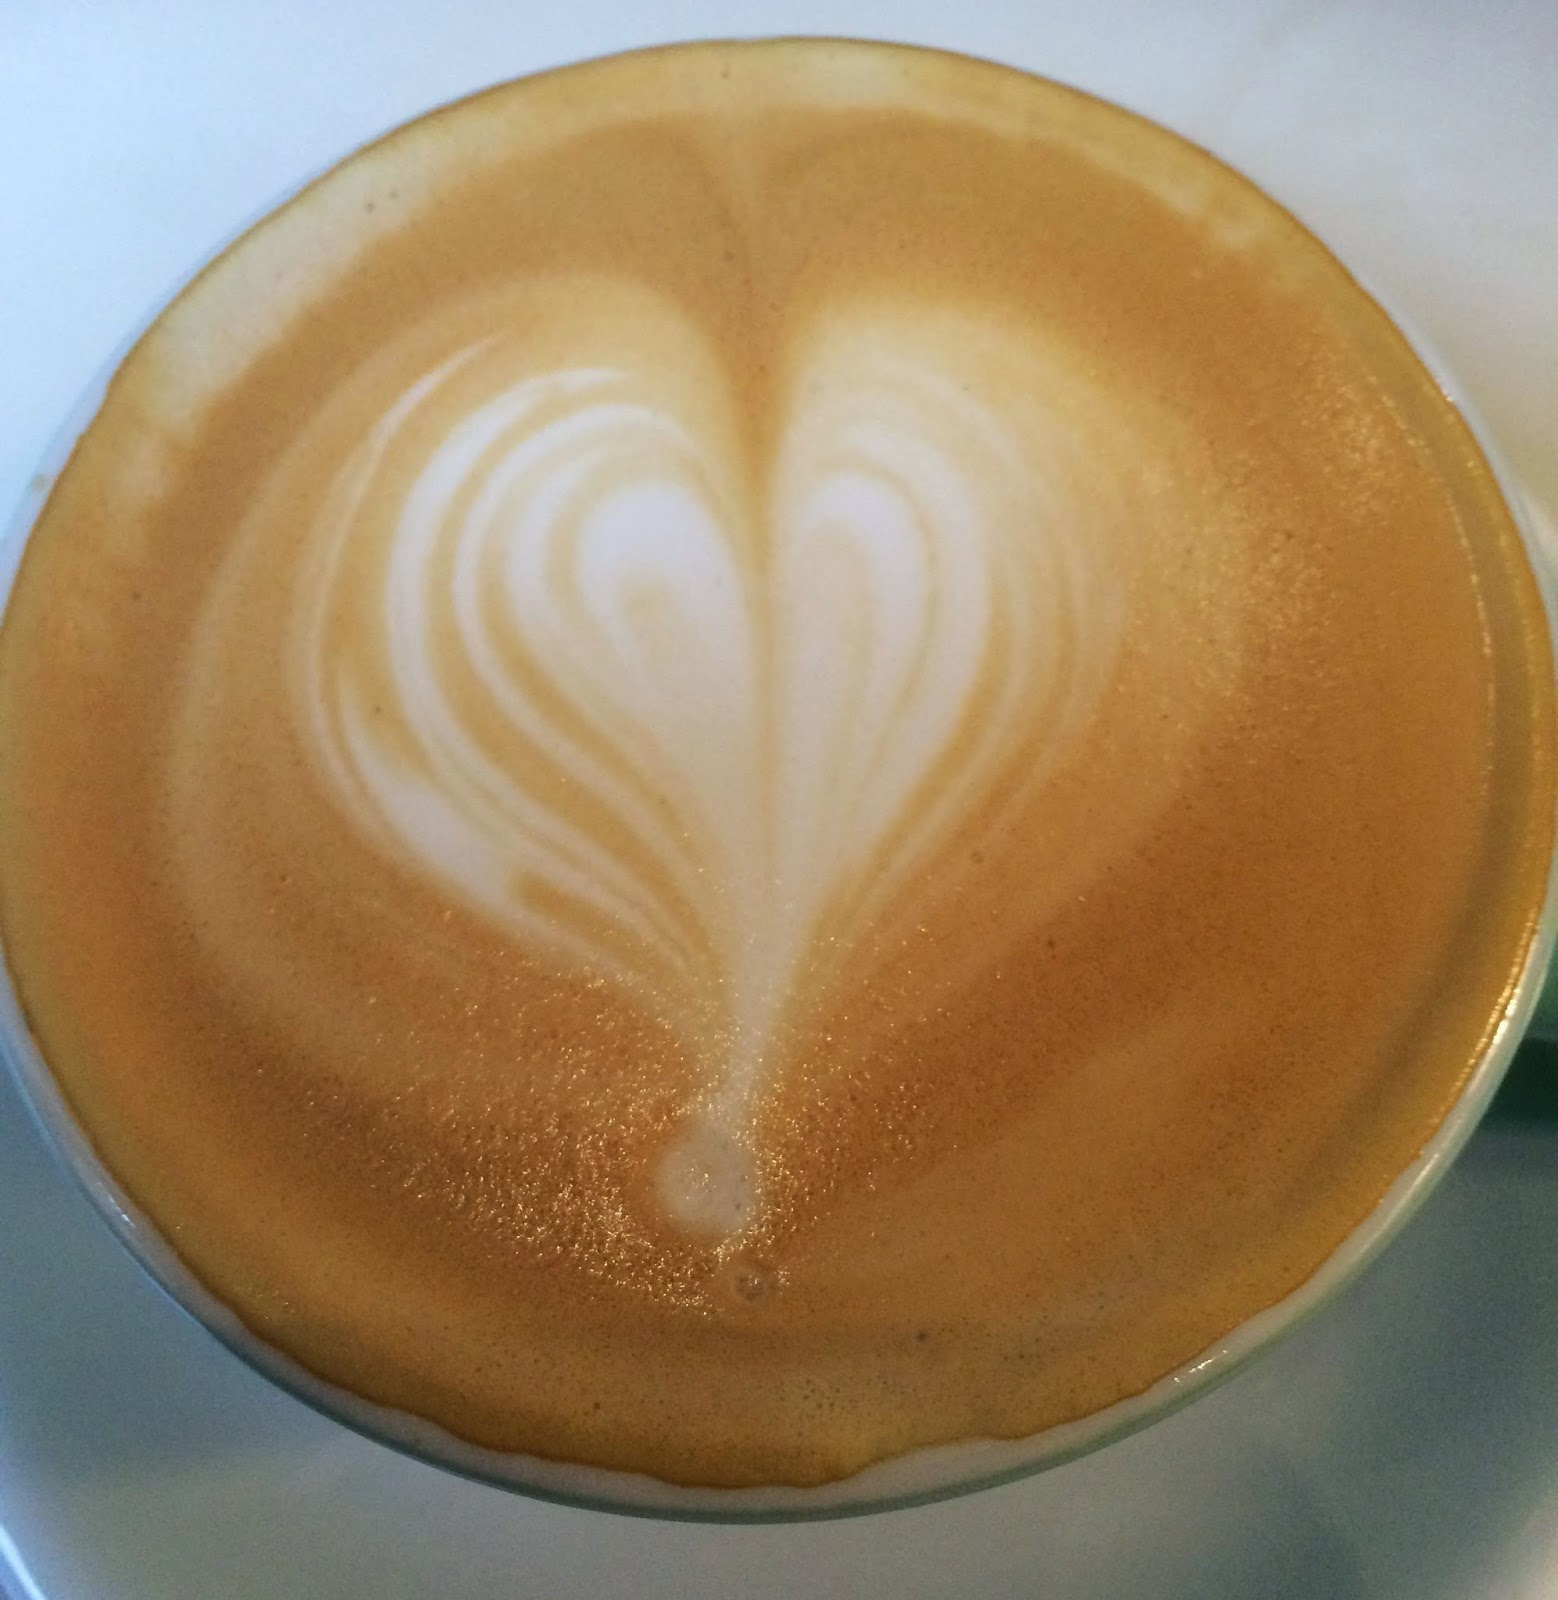 Frothy Coffee with Balloon image on top